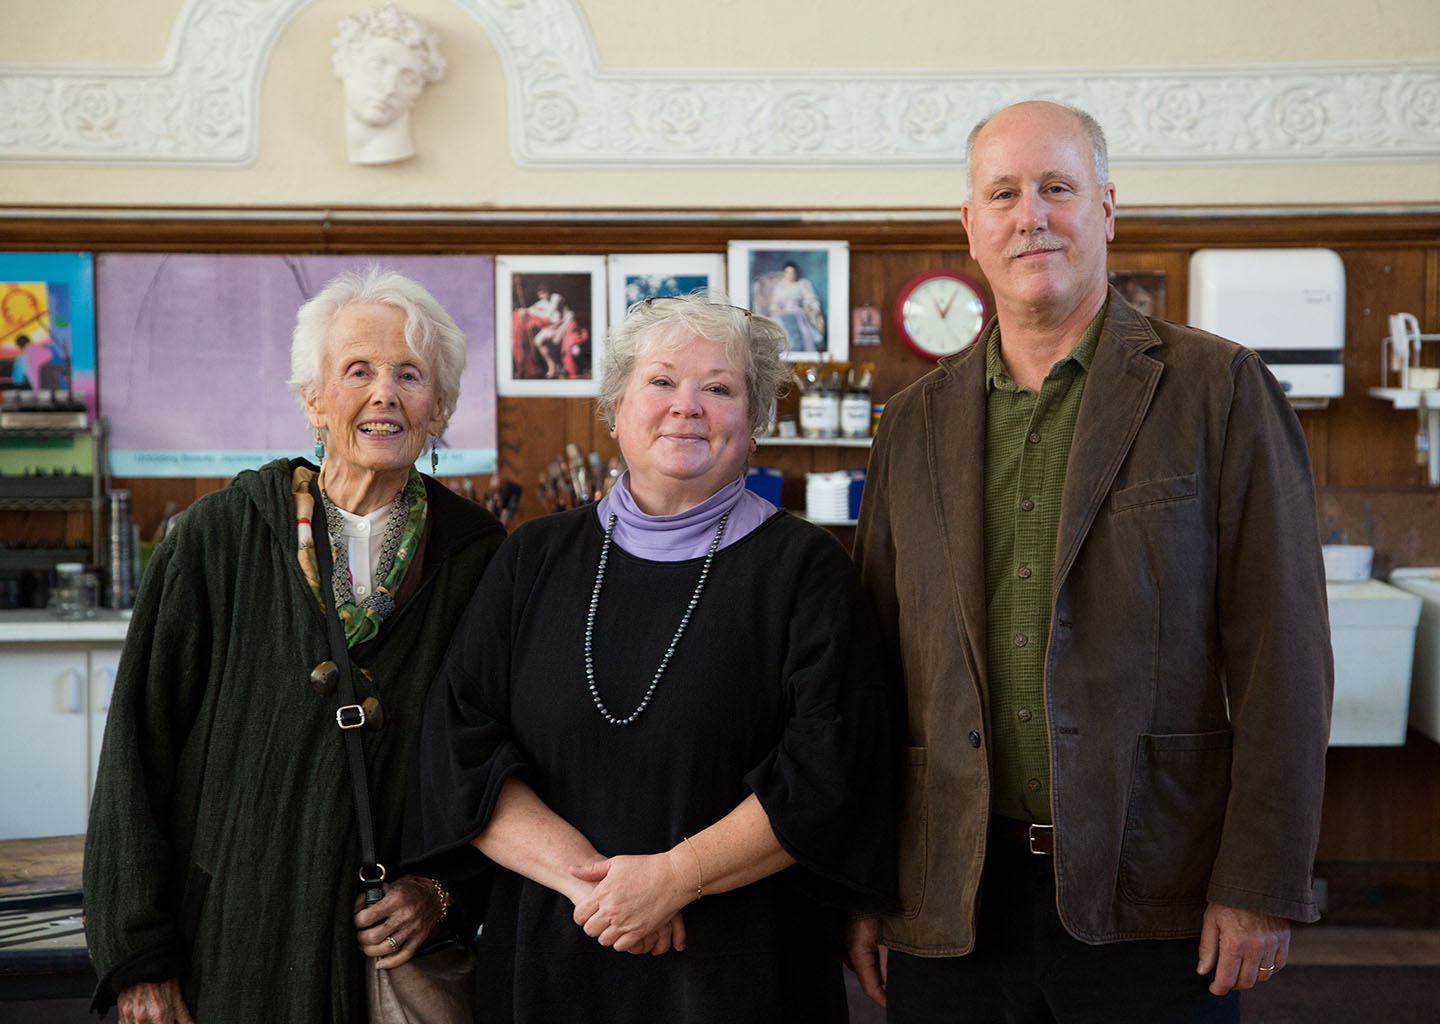 Priscilla Rockwell, whose late husband, Deever, cofounded the Rockwell Visiting Artists Program, and their son Taylor Rockwell '72, right, on campus with art teacher Loueta Chickadaunce. ANNE KOWALSKI